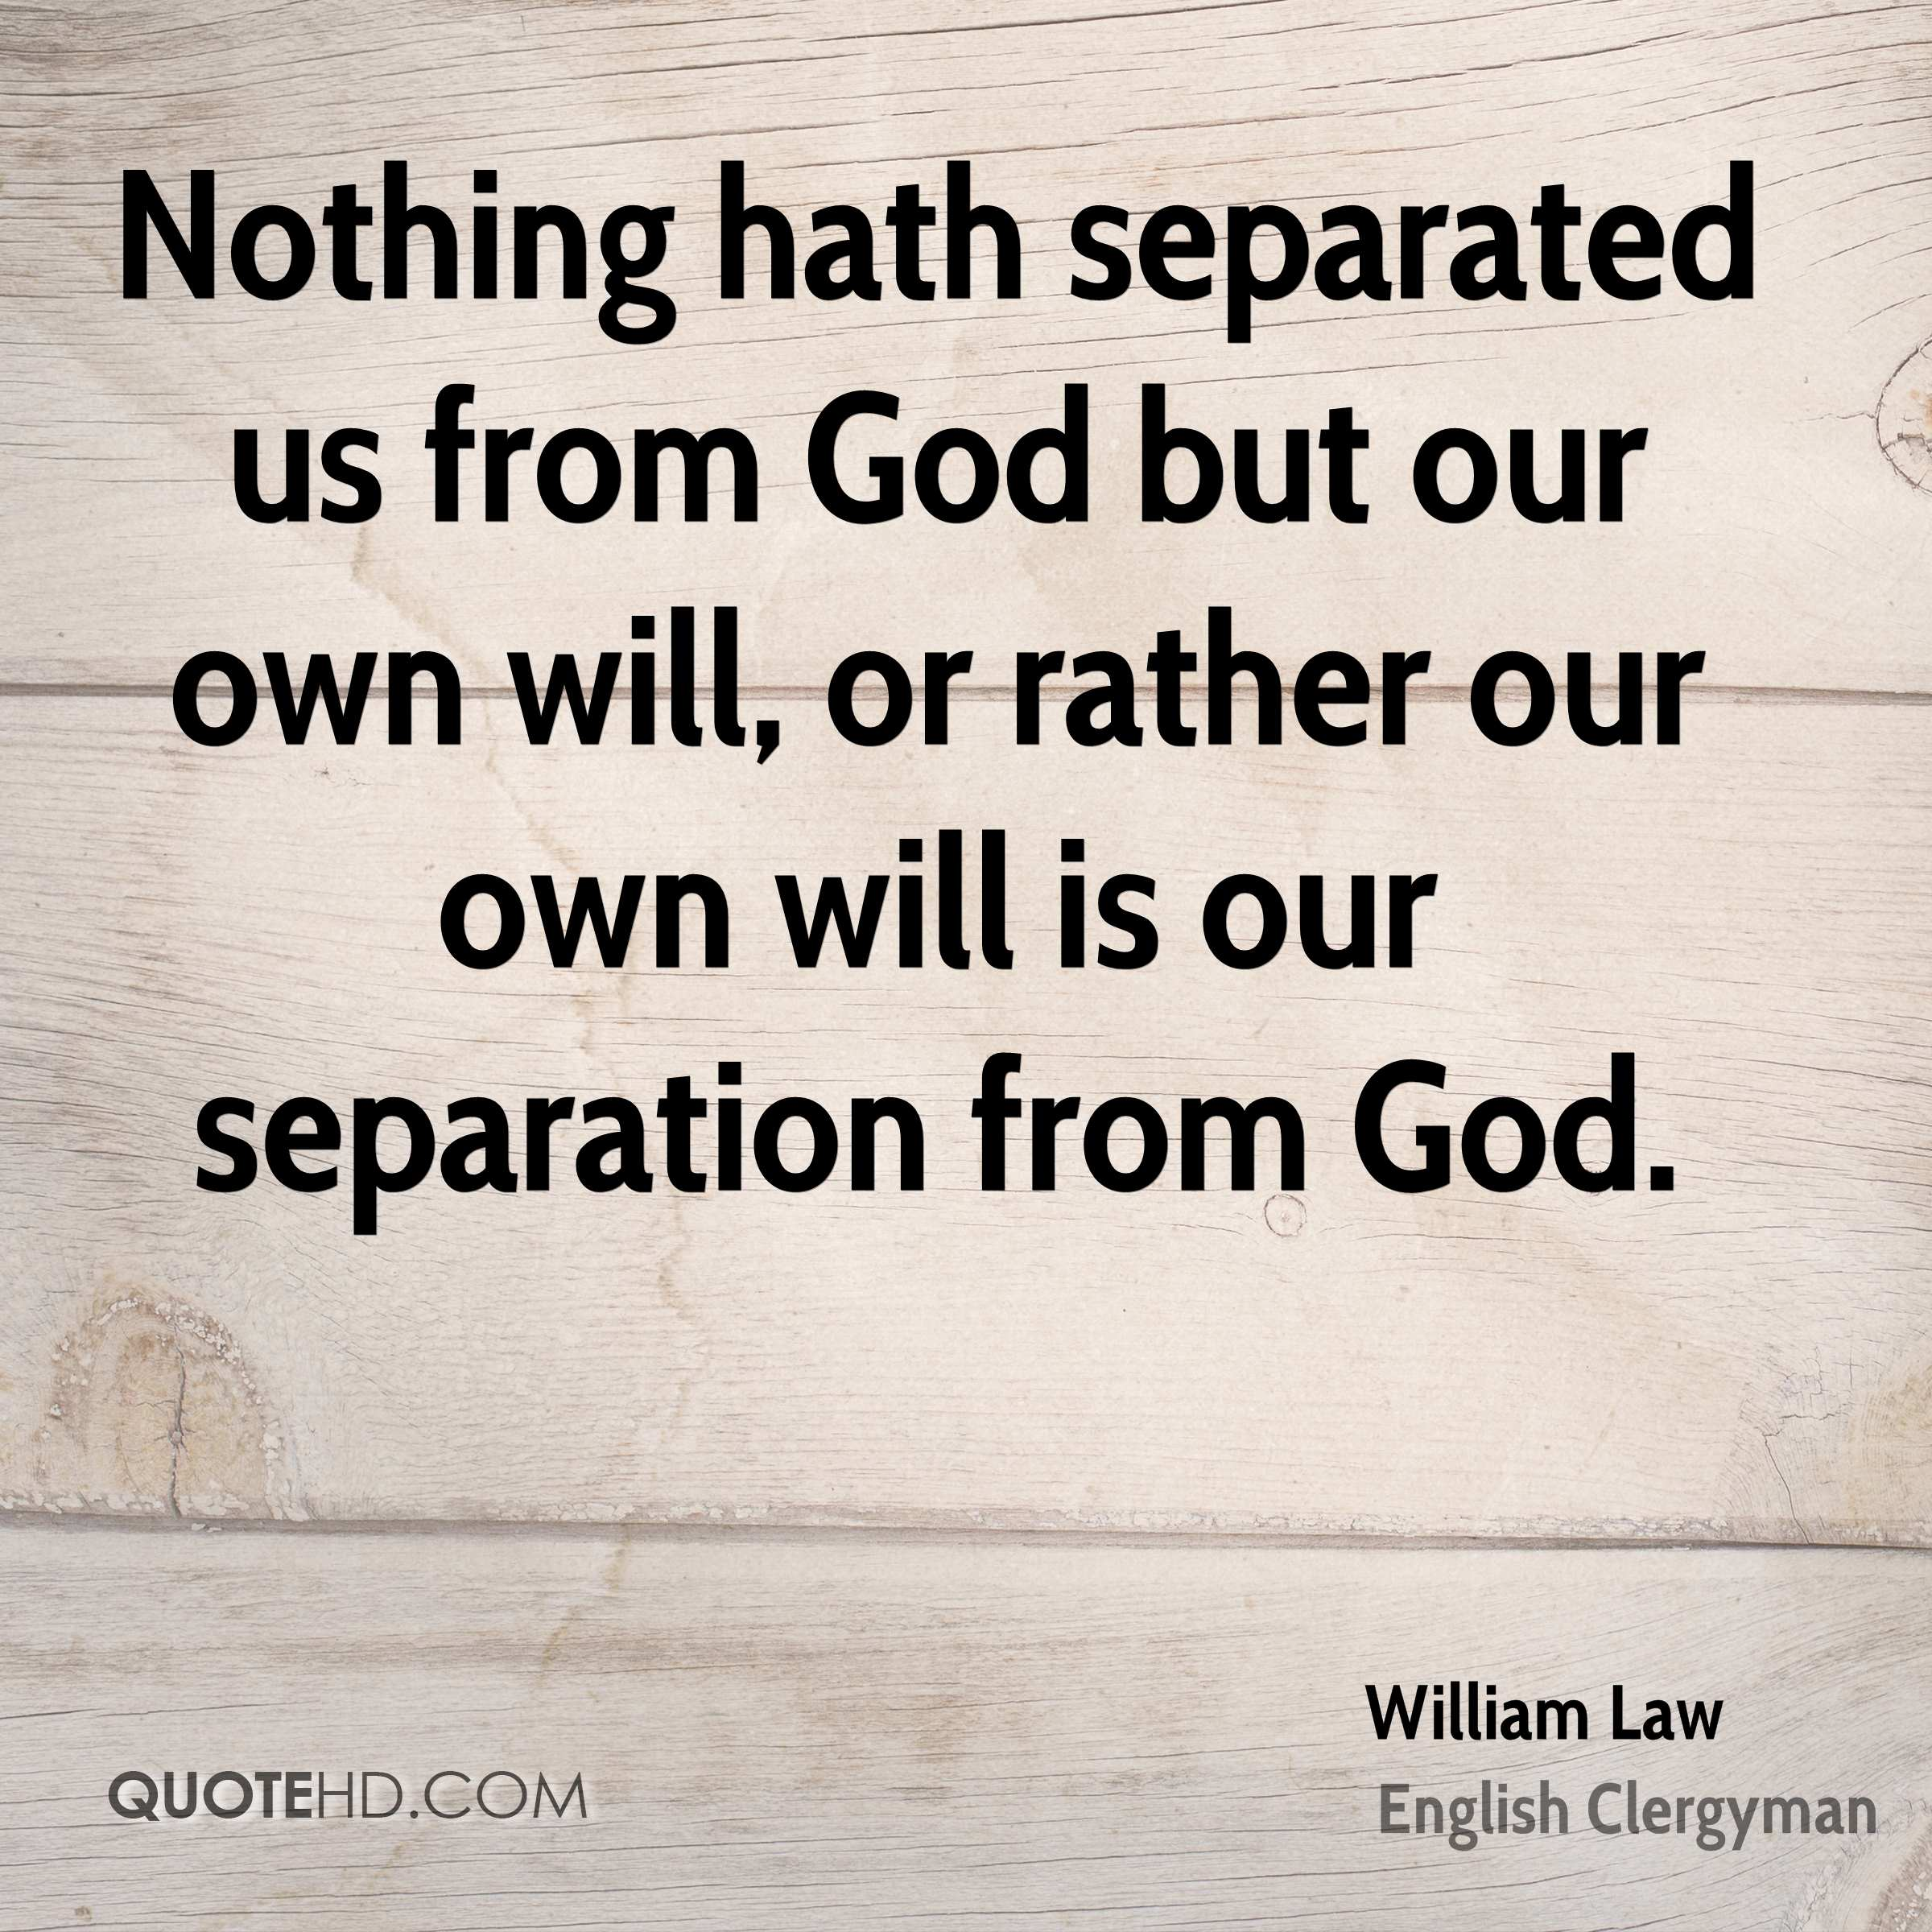 Nothing hath separated us from God but our own will, or rather our own will is our separation from God.